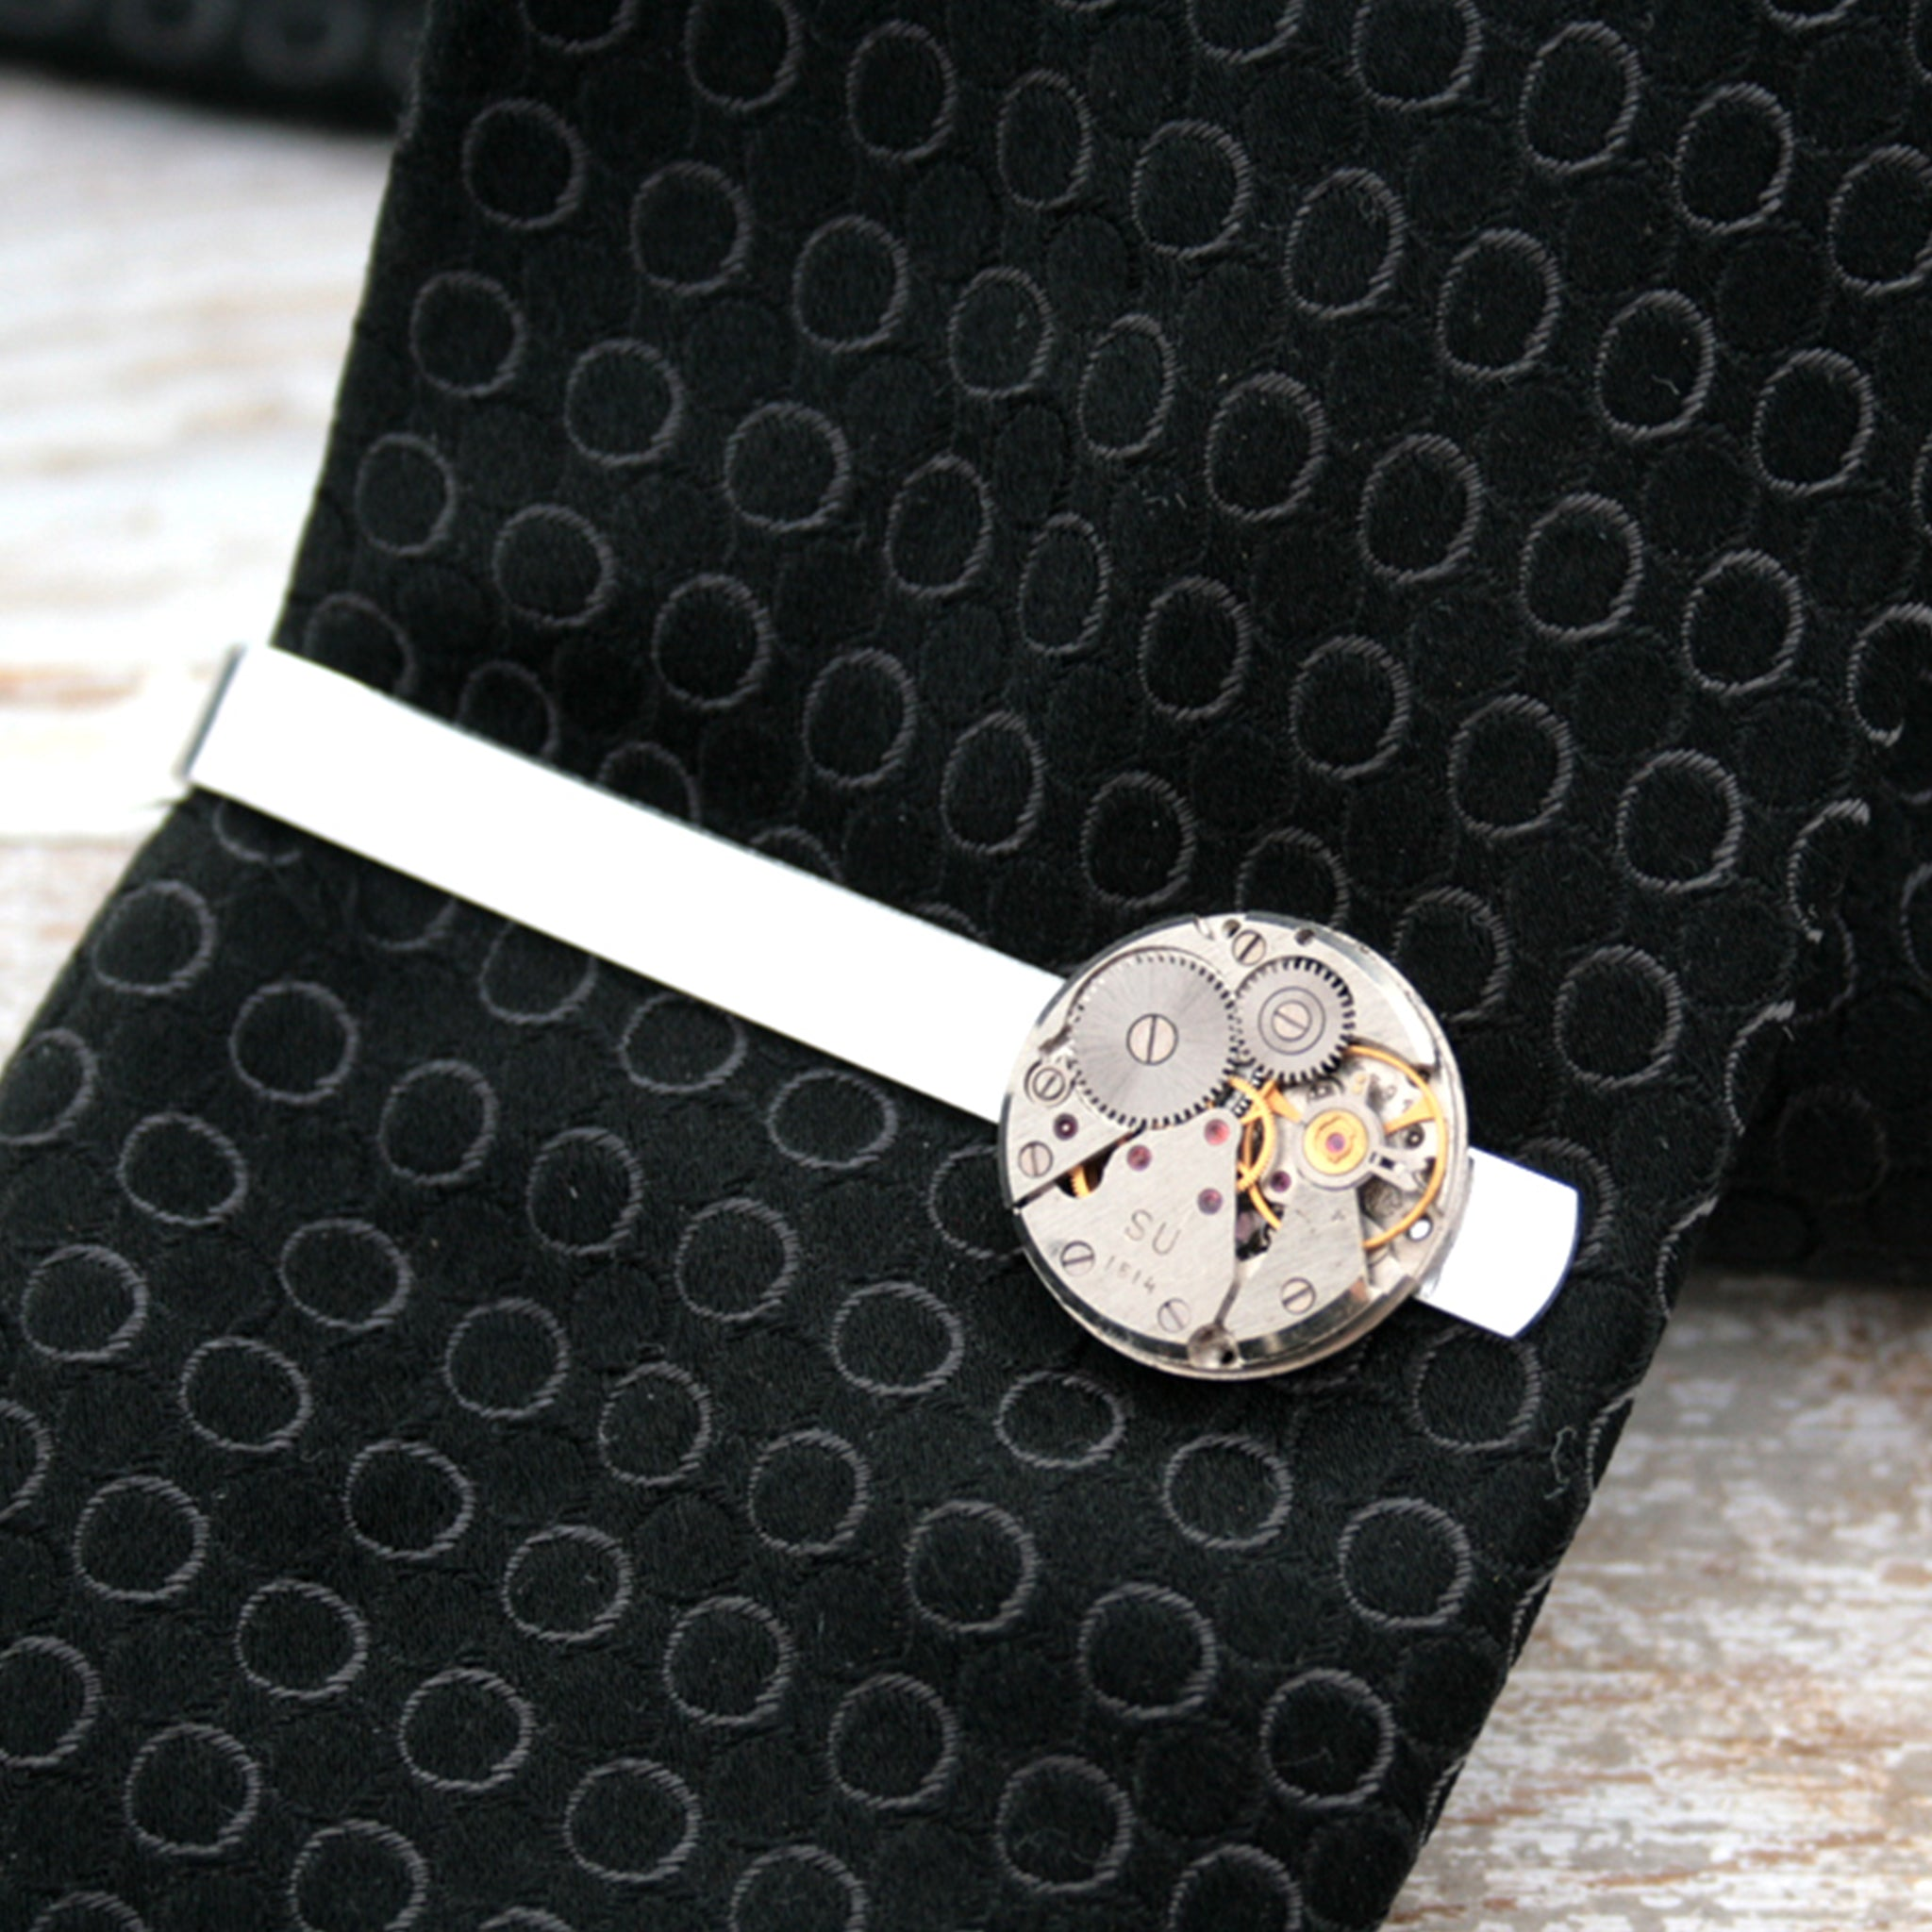 Steampunk Watch Movement Tie Clip on a tie